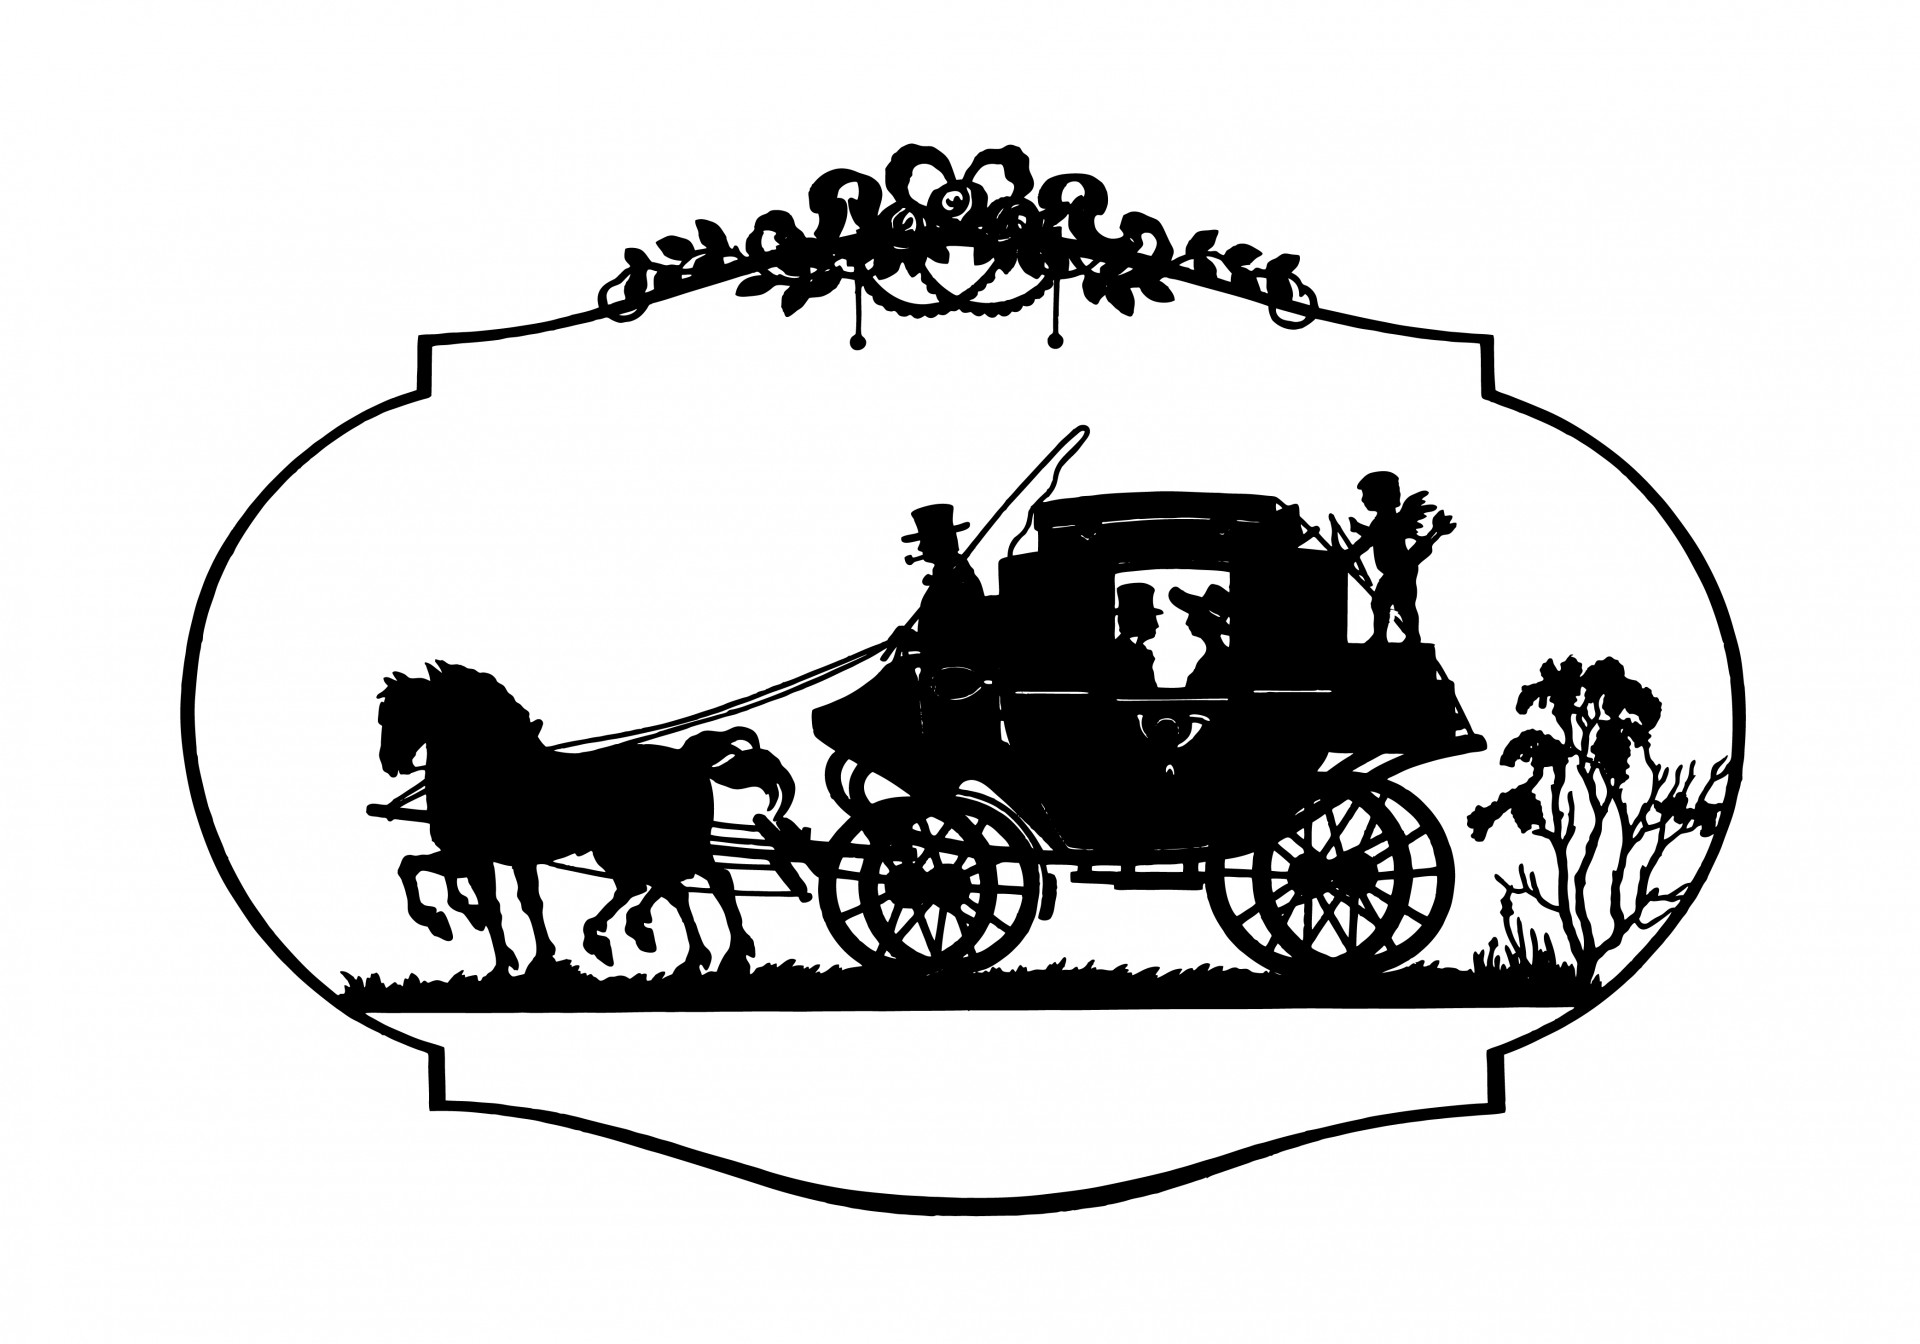 Horse & Carriage Vintage Clipart Free Stock Photo.